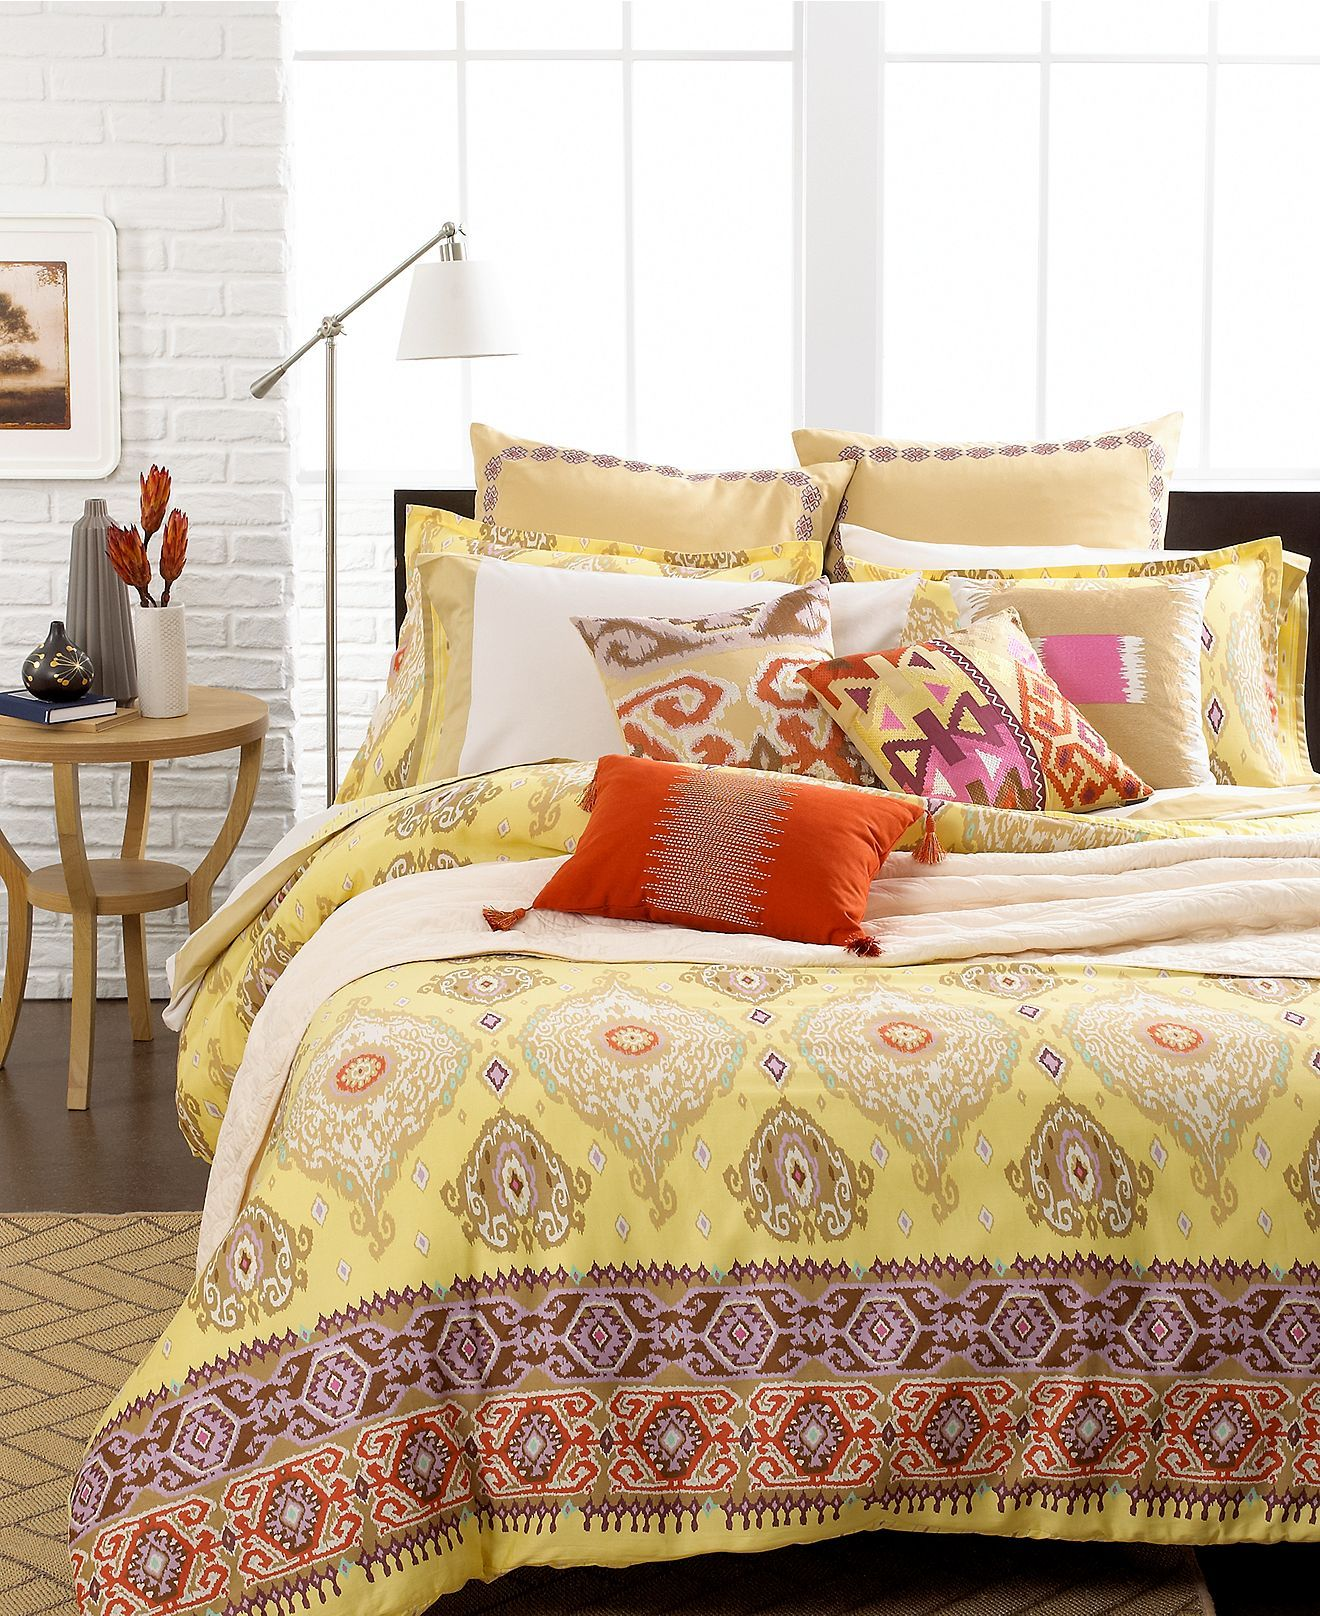 pdx home tommy bed echo turtle bedding reviews set wayfair cove bahama bath quilt